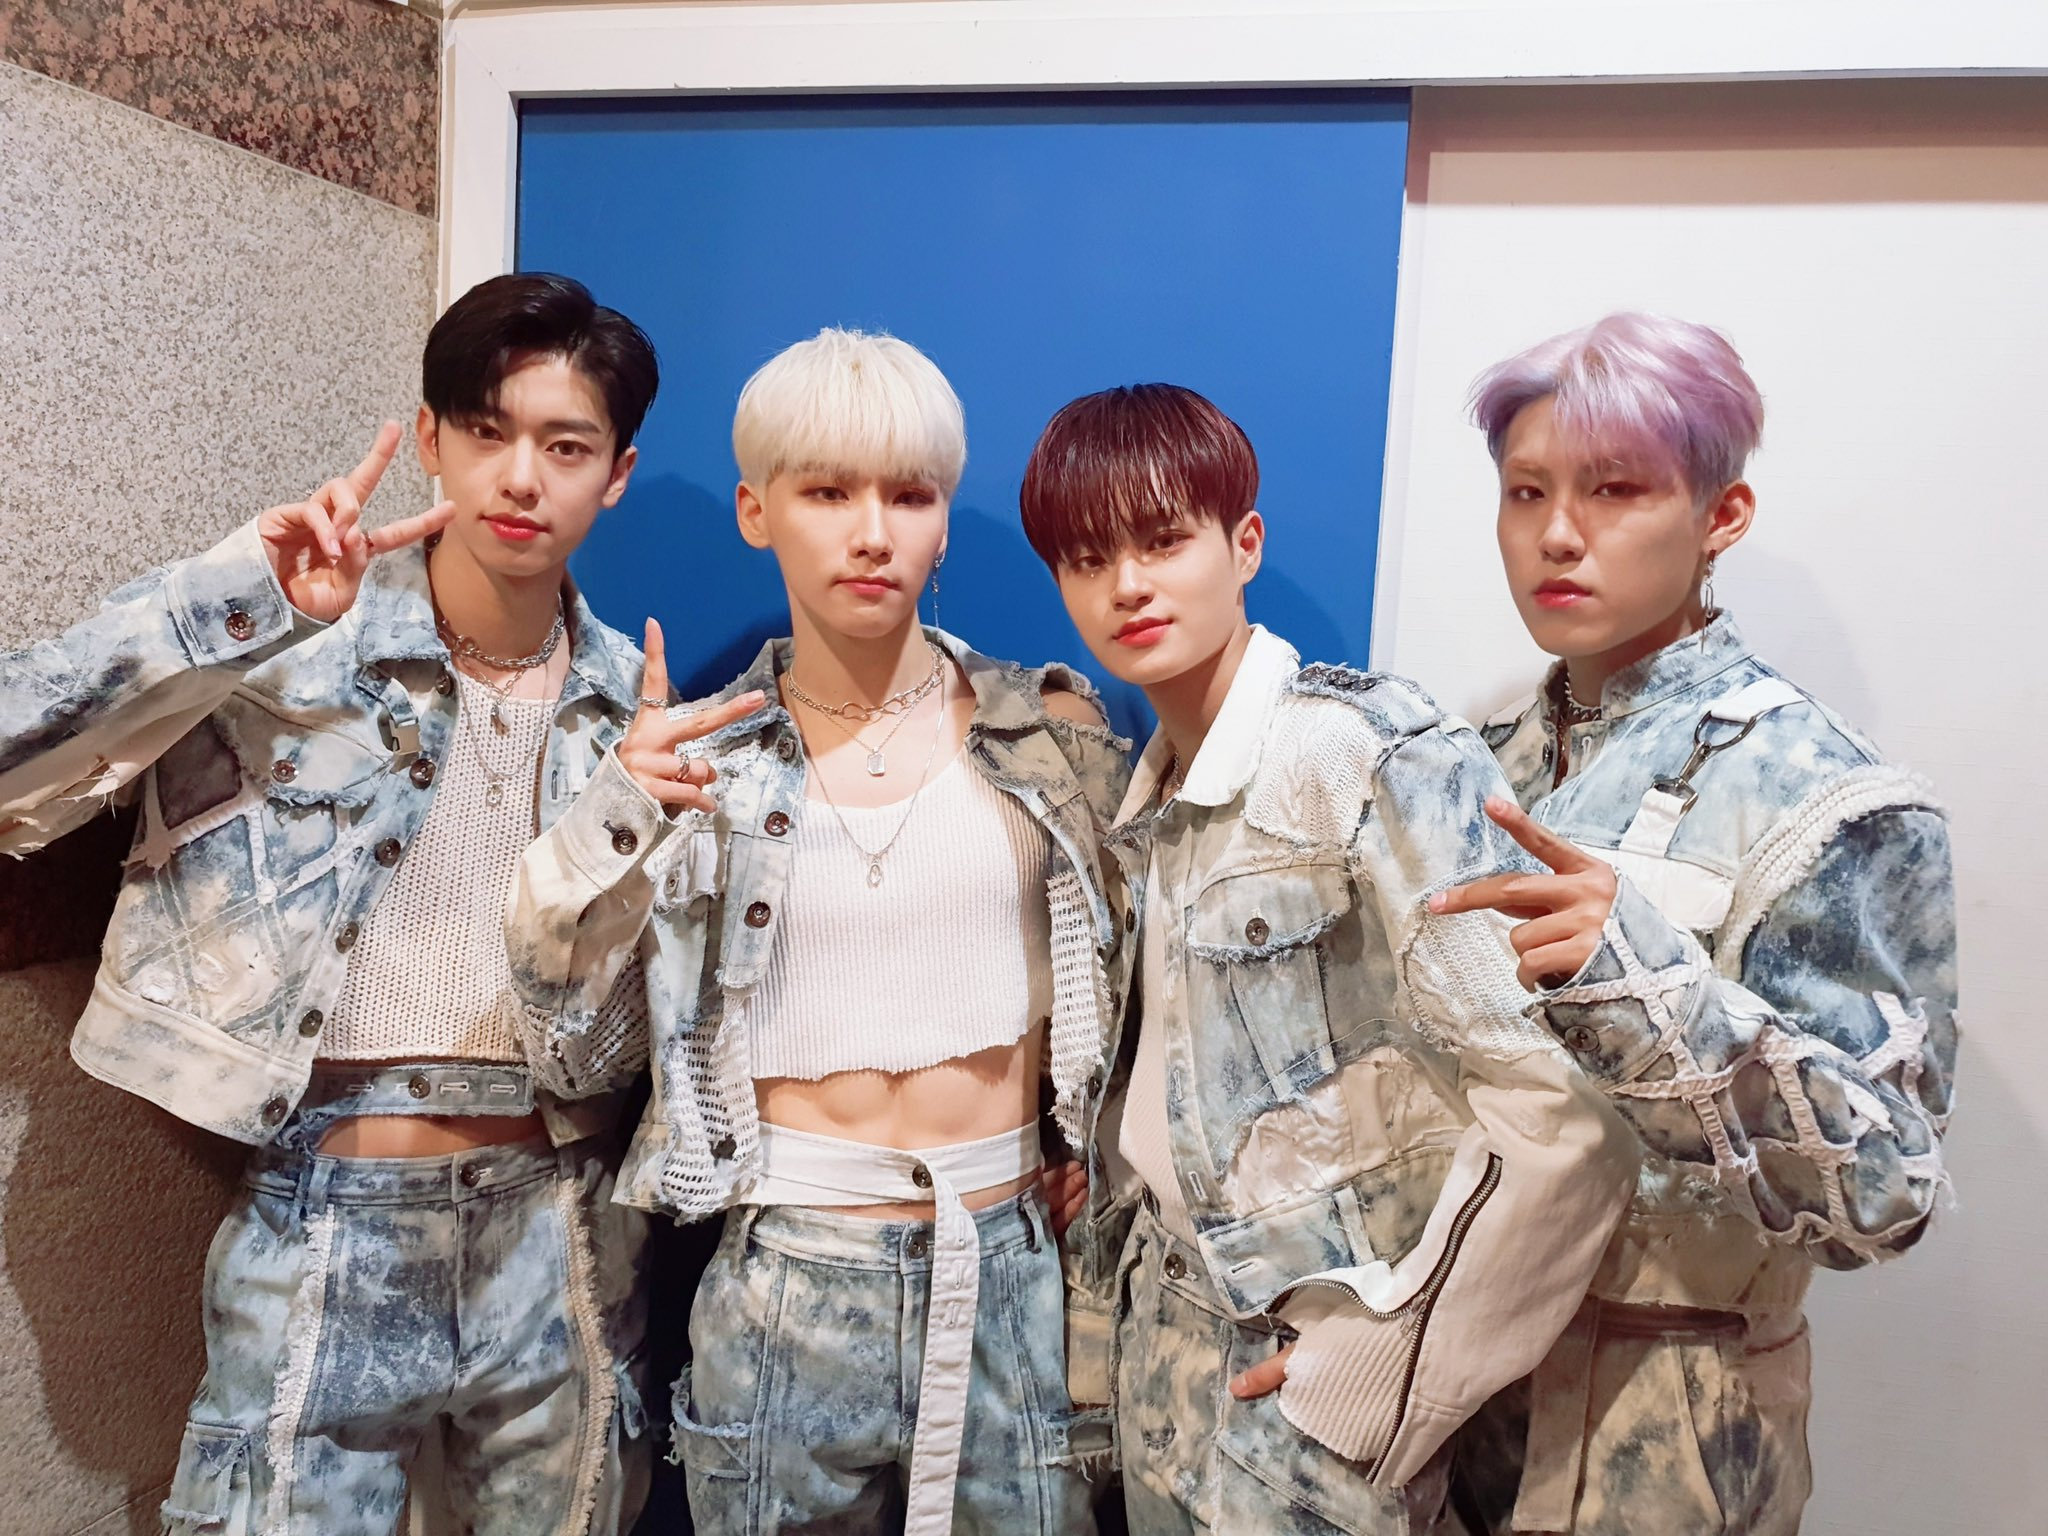 ab6ix-woong-abs-4